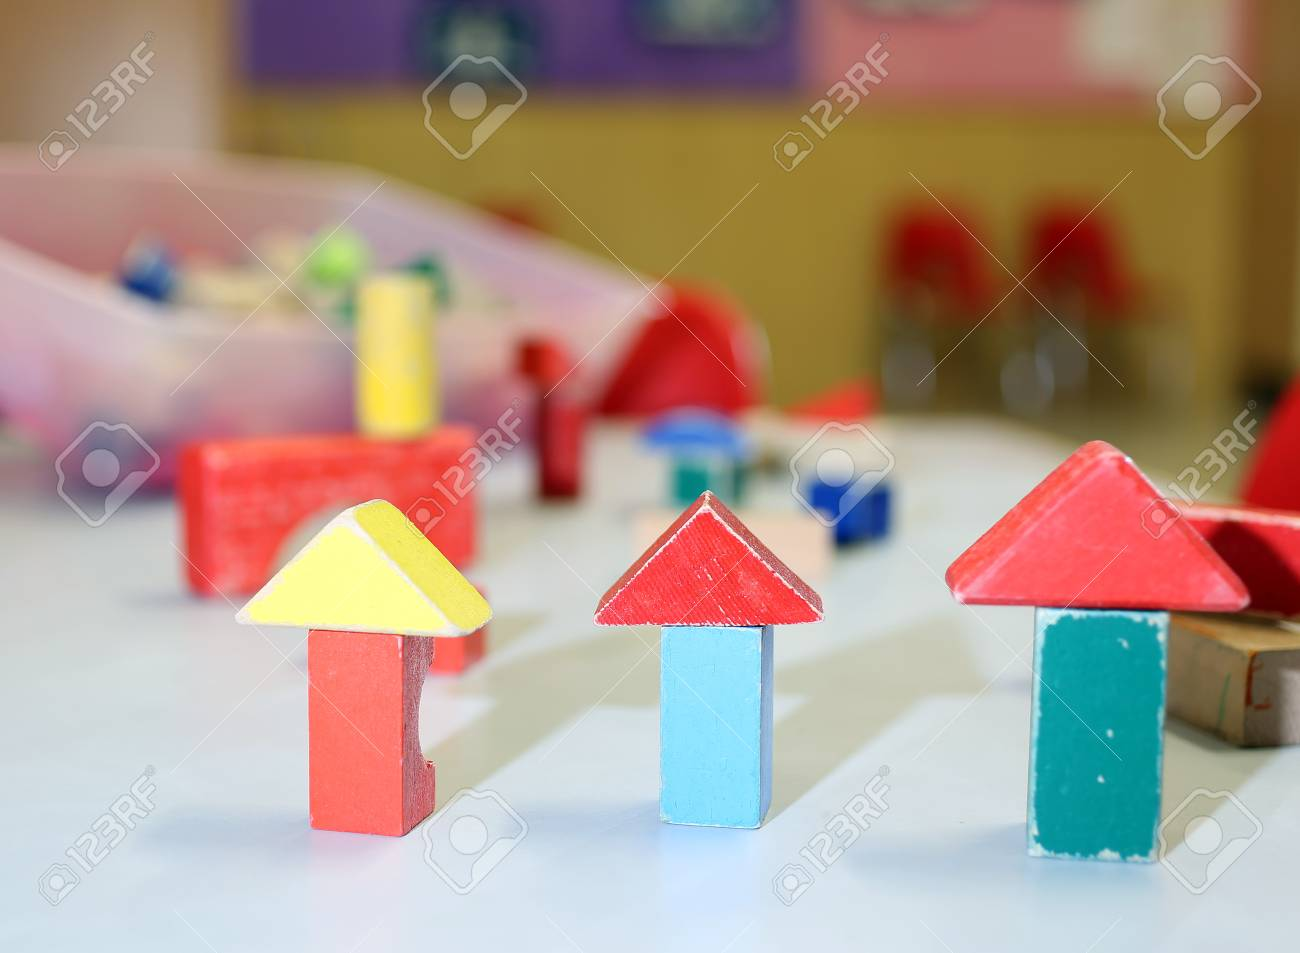 Many Wooden Toys And Pieces Of Buildings In The Nursery Classroom Stock Photo